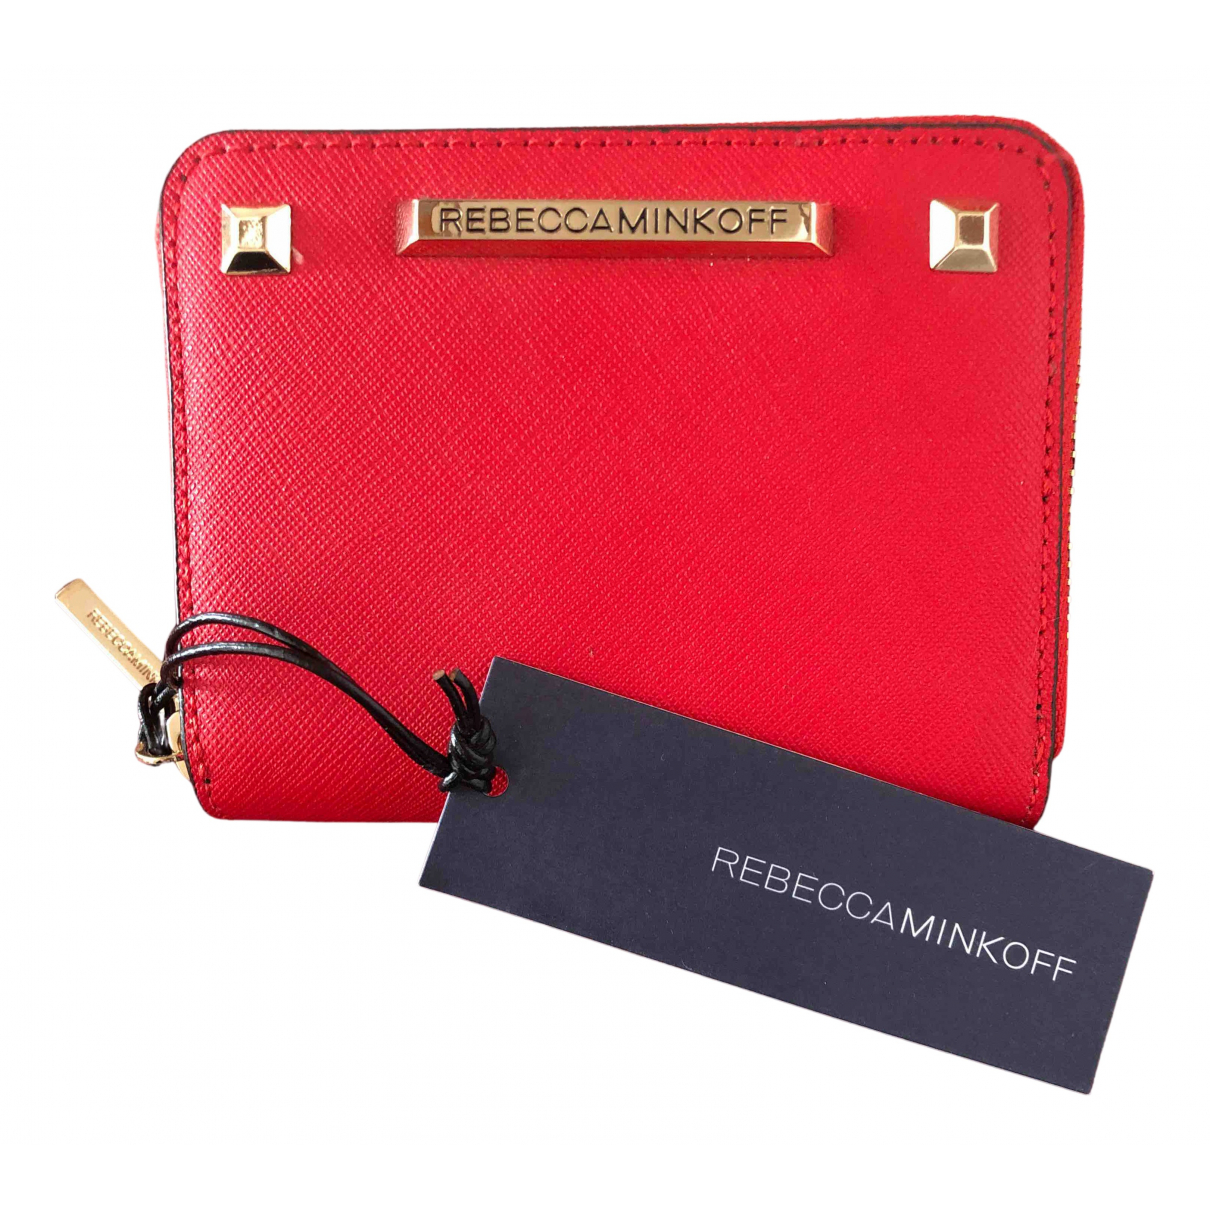 Rebecca Minkoff N Red Leather wallet for Women N